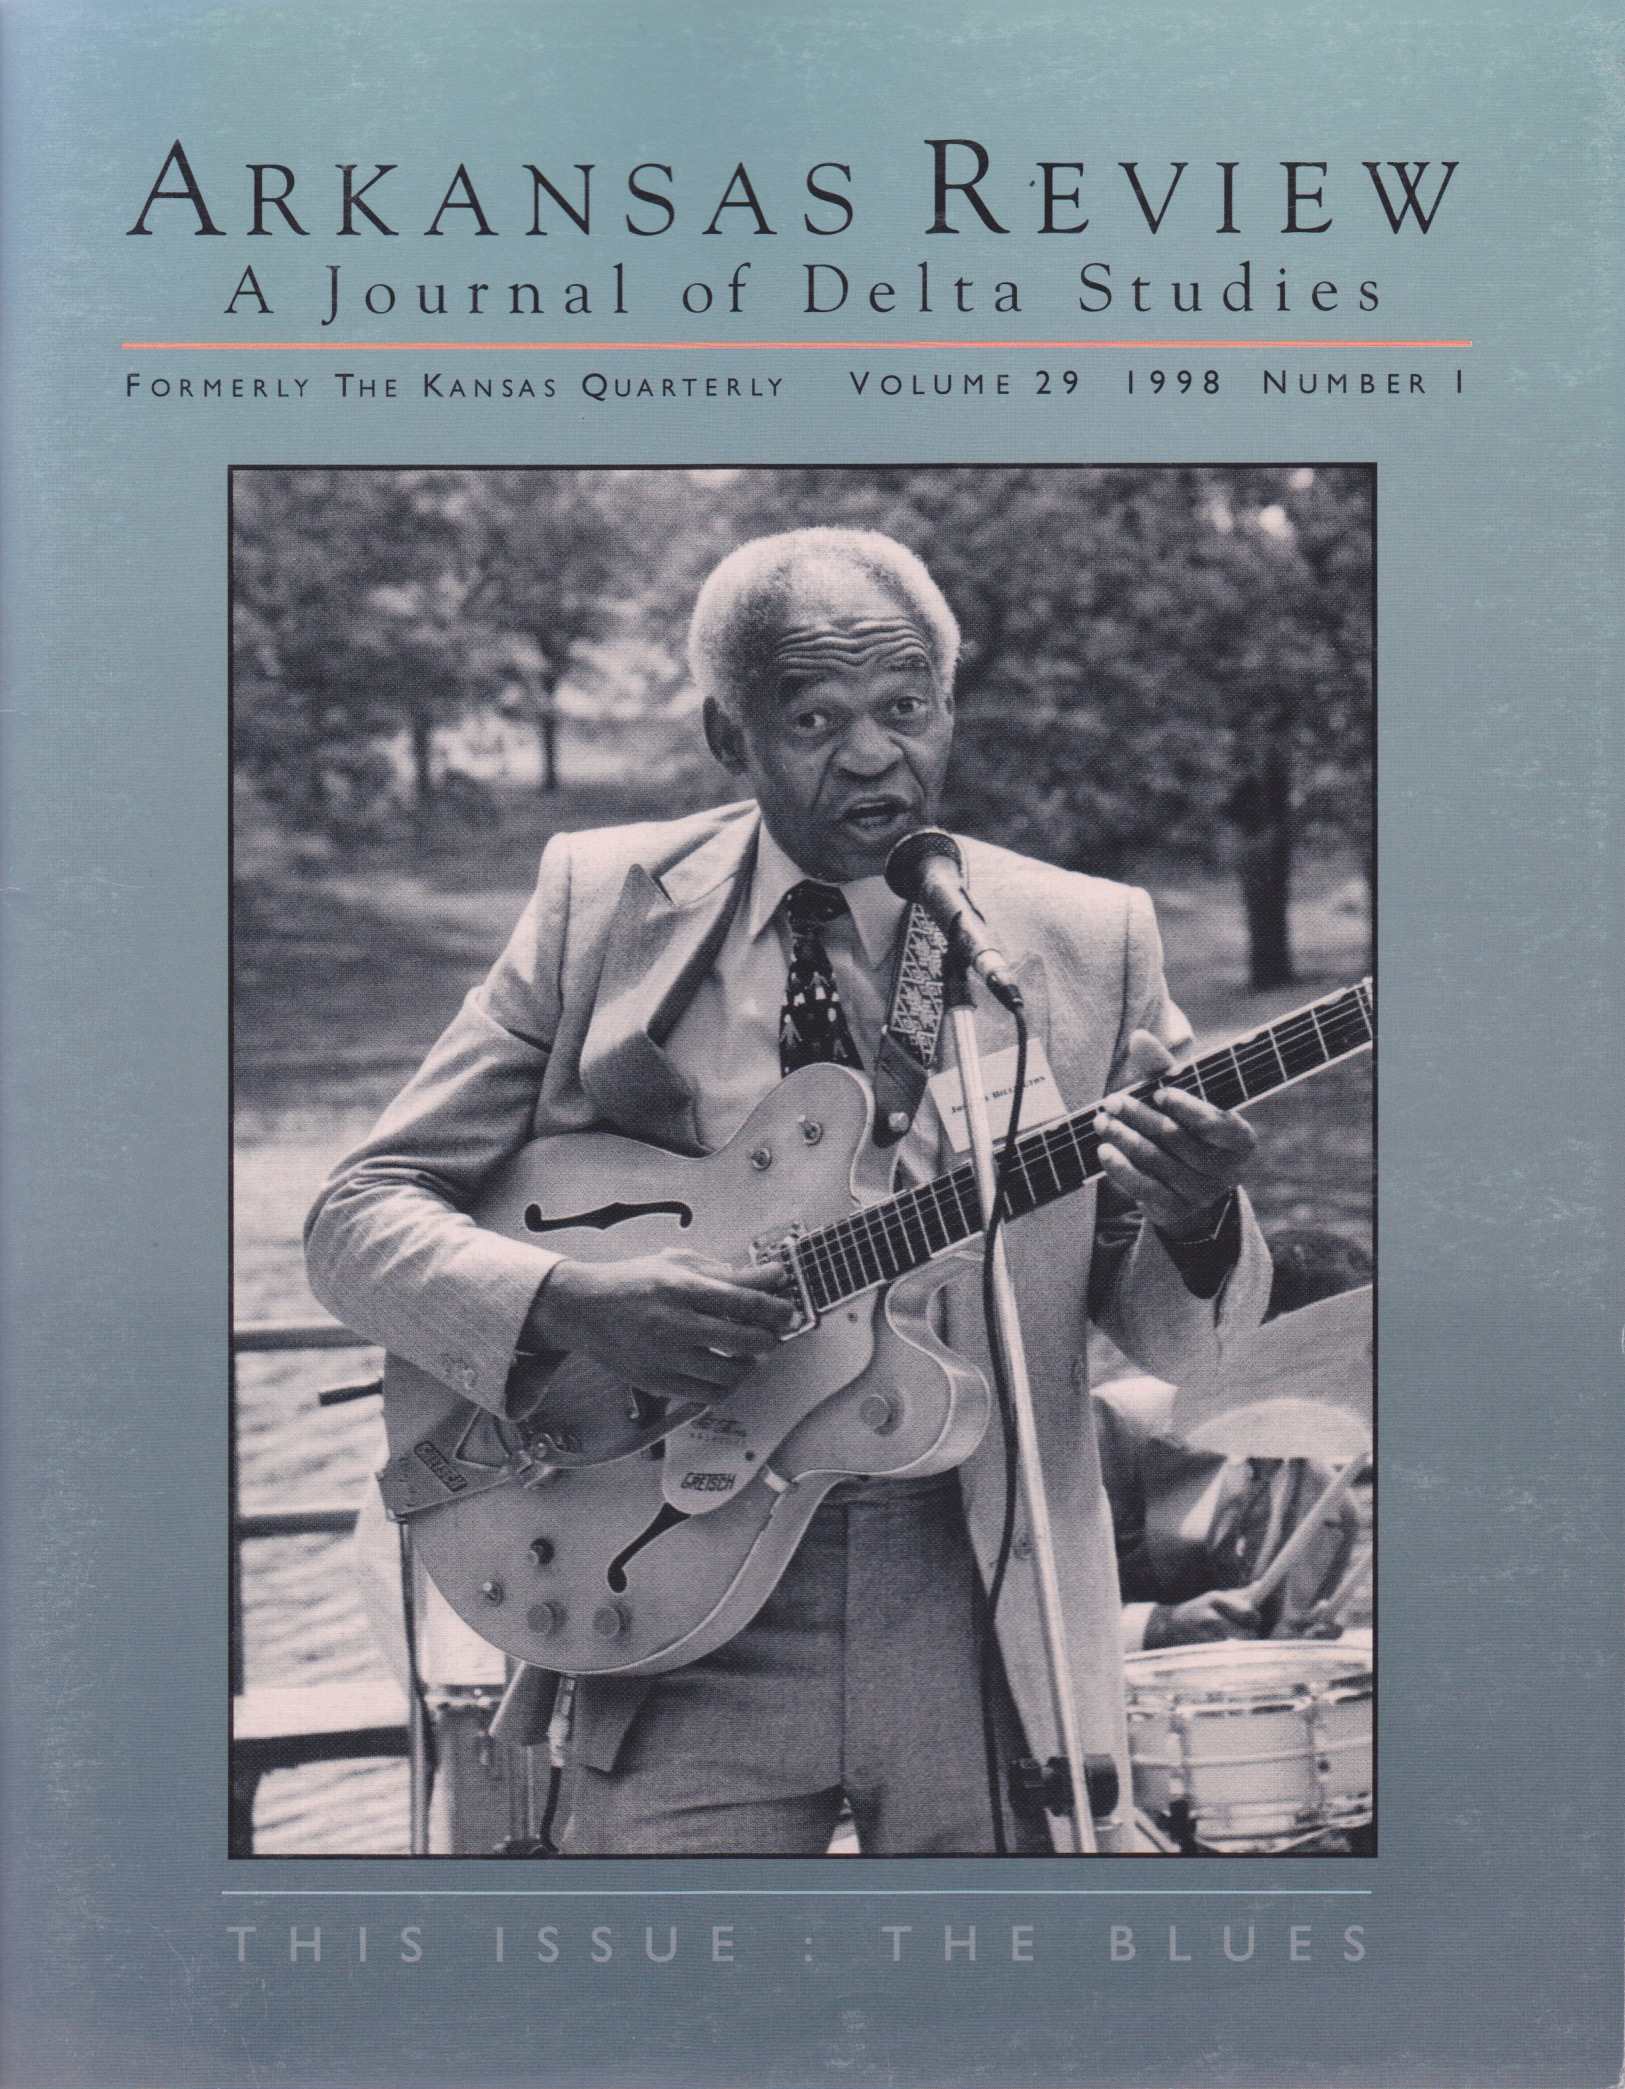 cover image: Mr. Johnnie Billington with Guitar